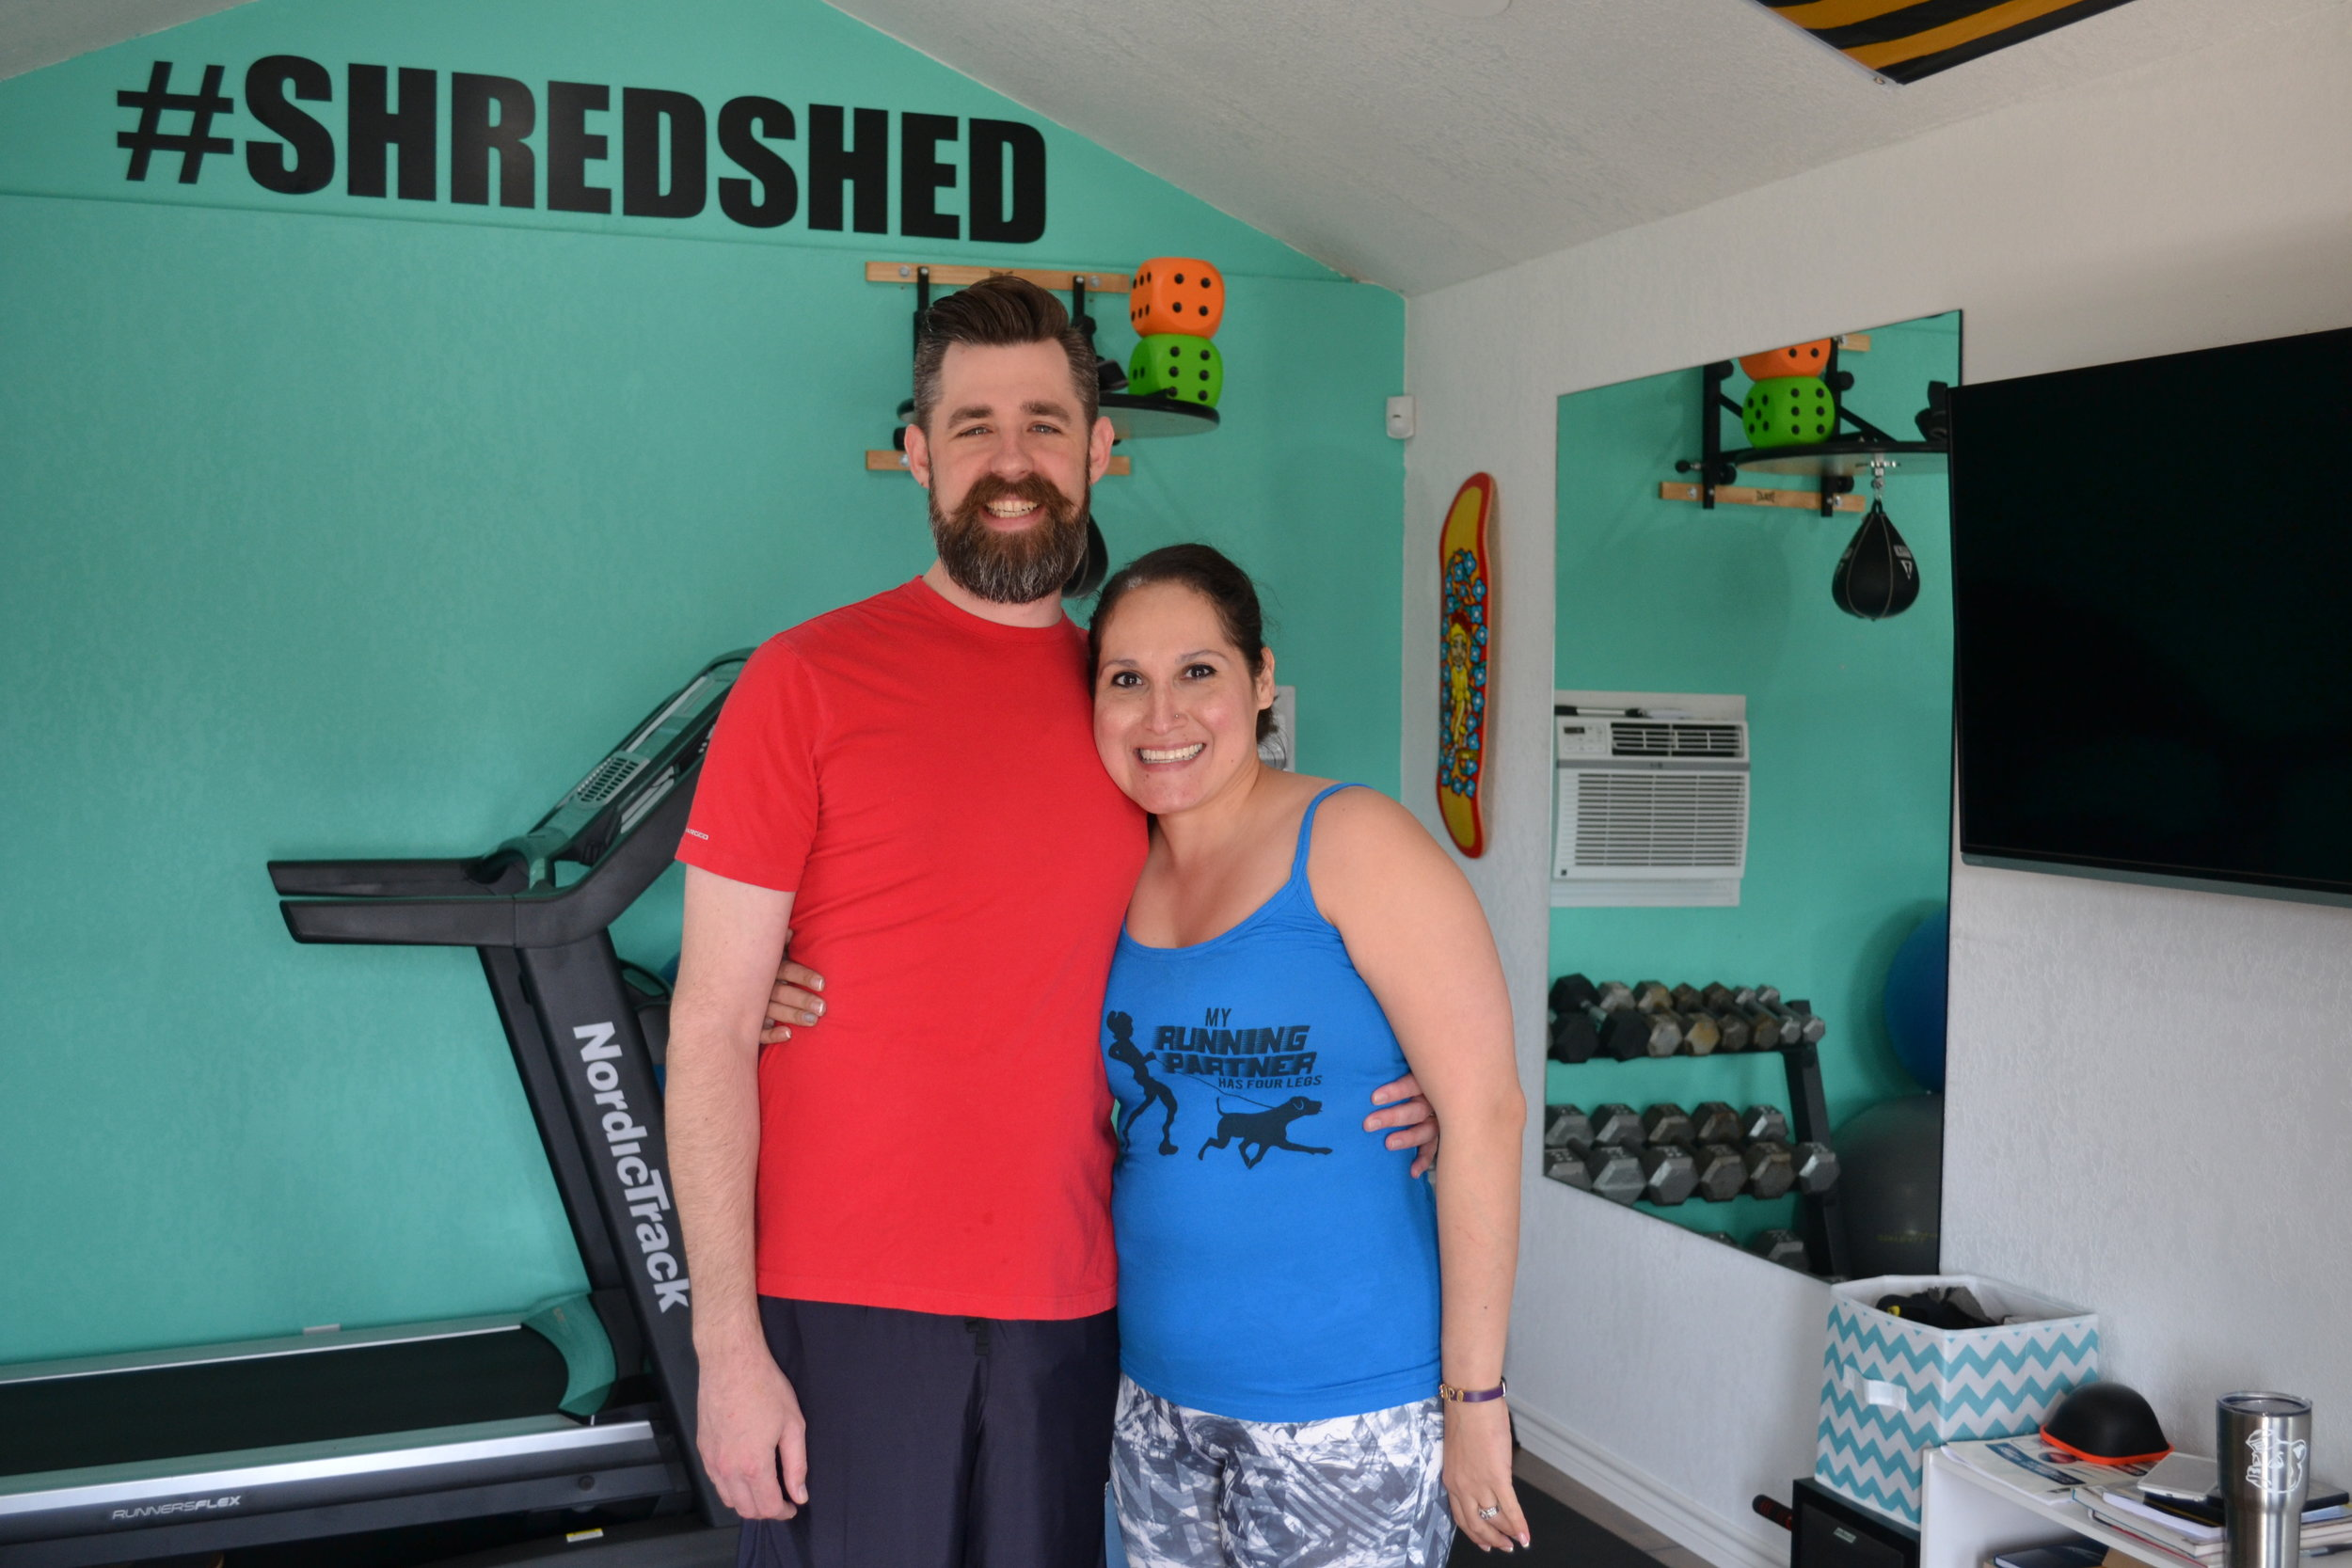 Cathy representing with her  Running with Ollie  shirt in the  #shredshed !